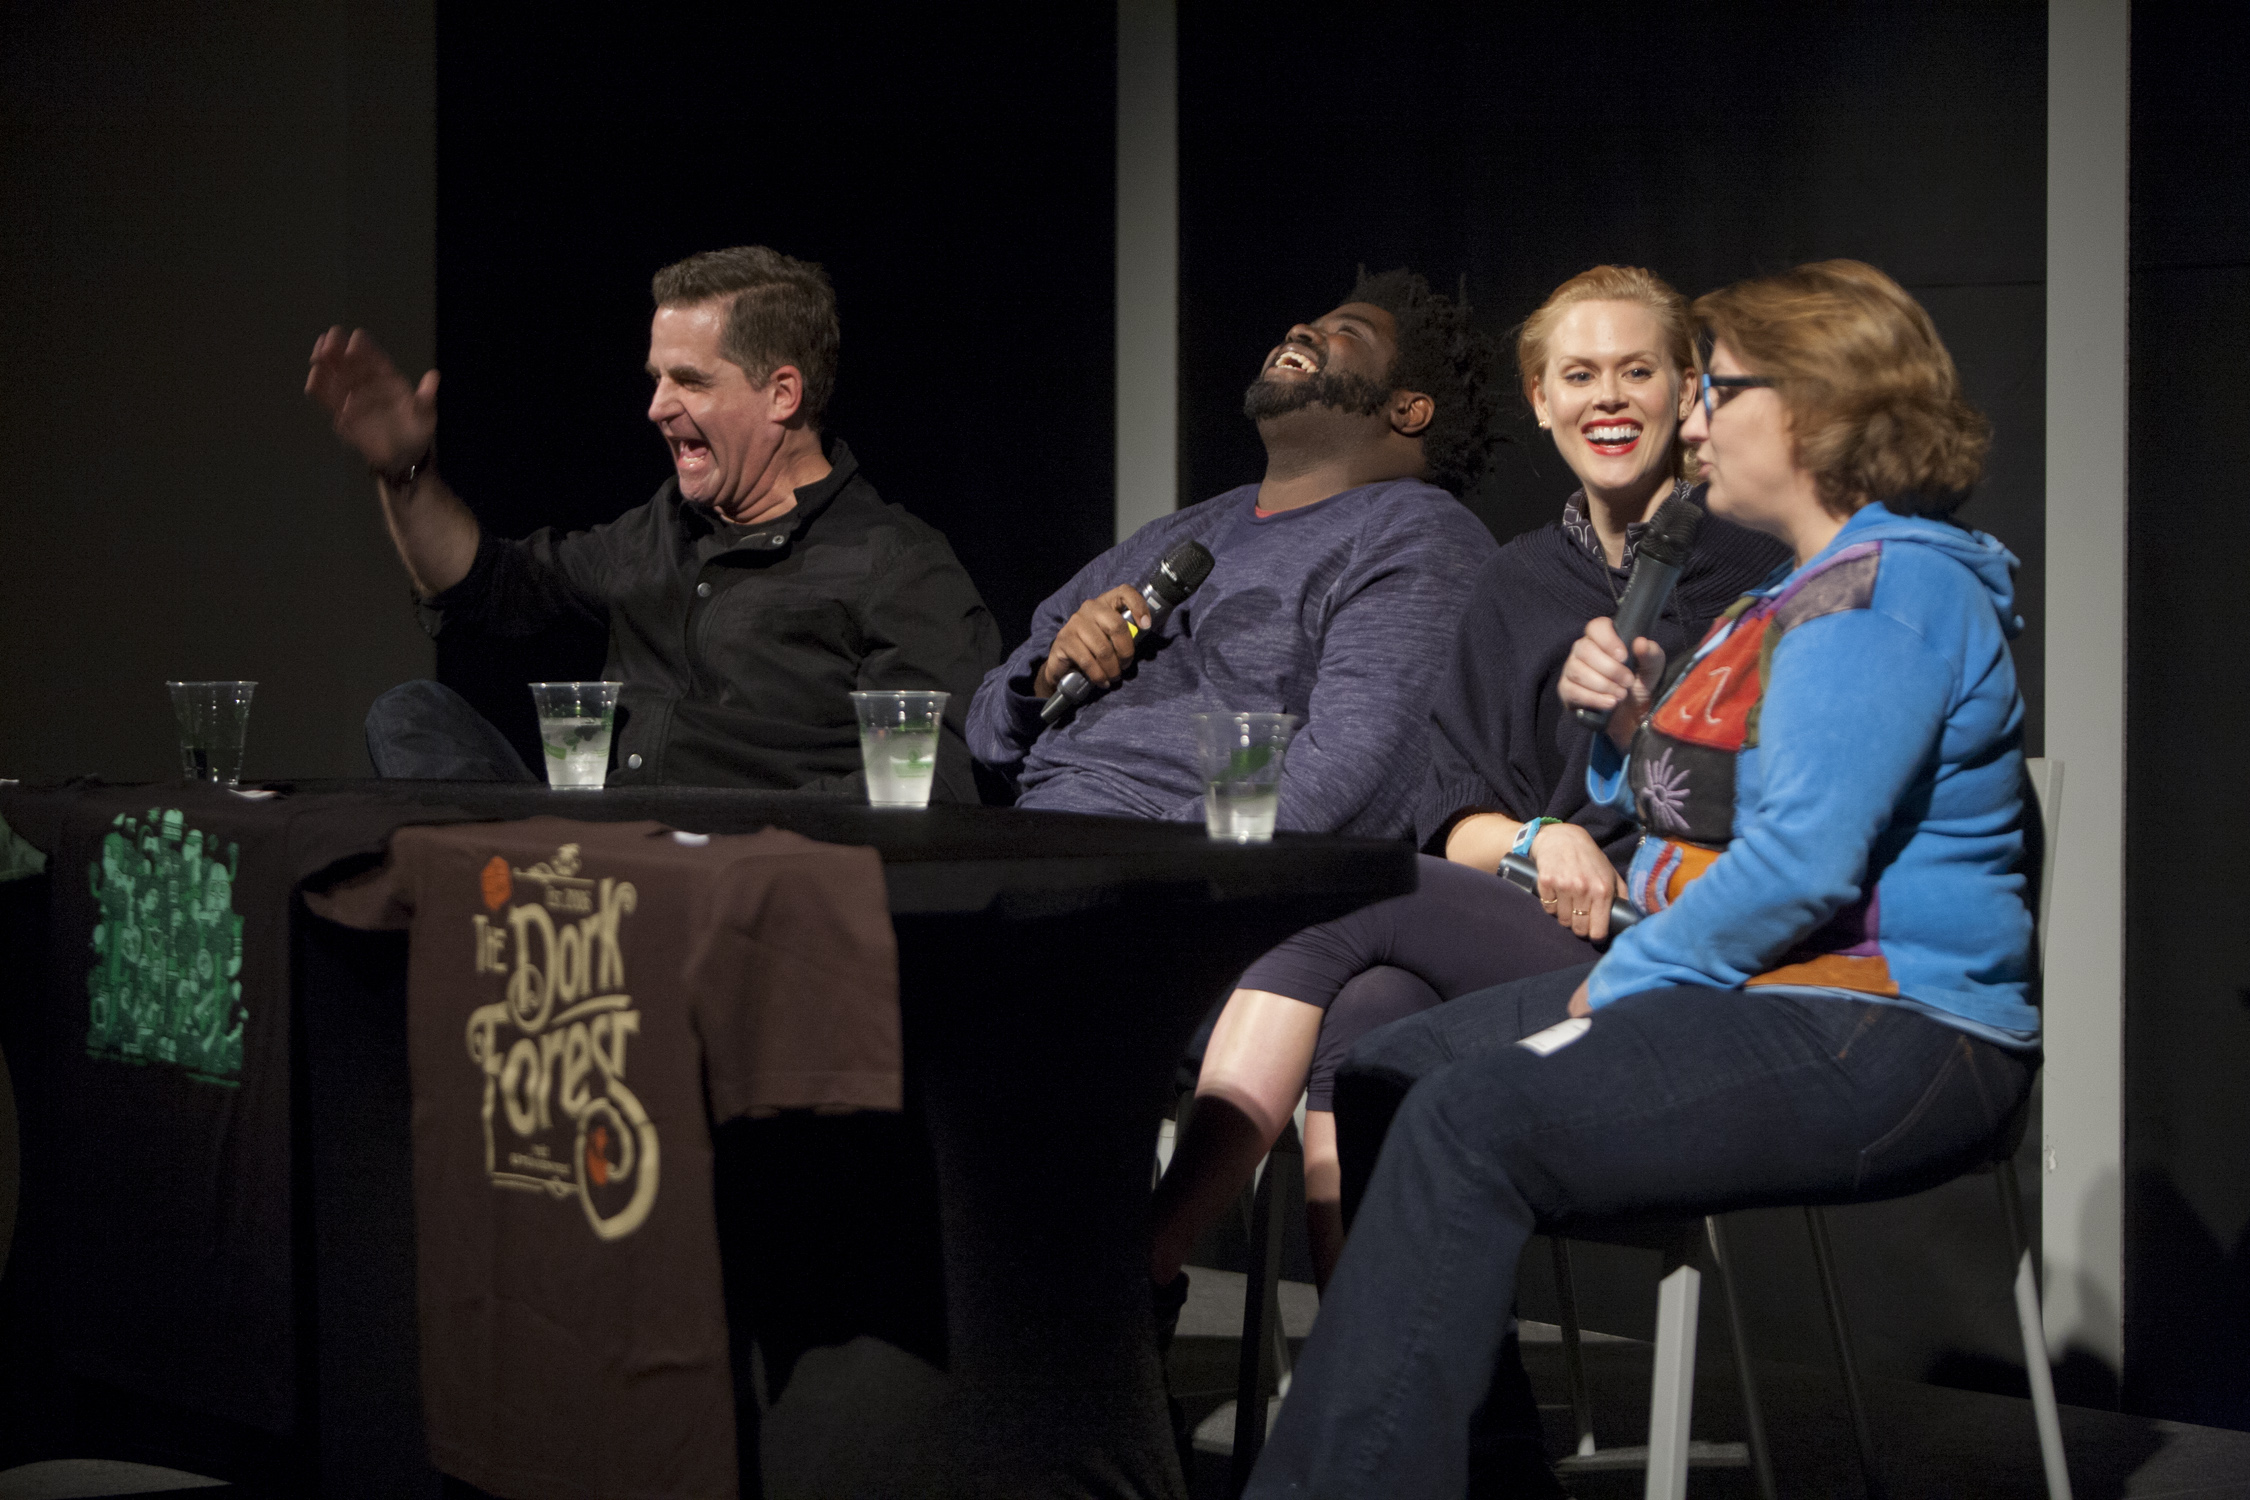 The Dork Forest with Jackie KashianTDF EP 217 – Todd Glass, Janet Varney & Ron Funches Live at Sketchfest(February 18th, 2014) - San Francisco Sketchfest is dorky goodness. I did a live Dork Panel with Todd Glass, Ron Funches and Janet Varney. Oh… I'll have them back on individually because it was FASCINATING. Table setting, Dioramas and the PS4 are discussed. Not ENOUGH of any of it, but it was still super fun. Enjoy.